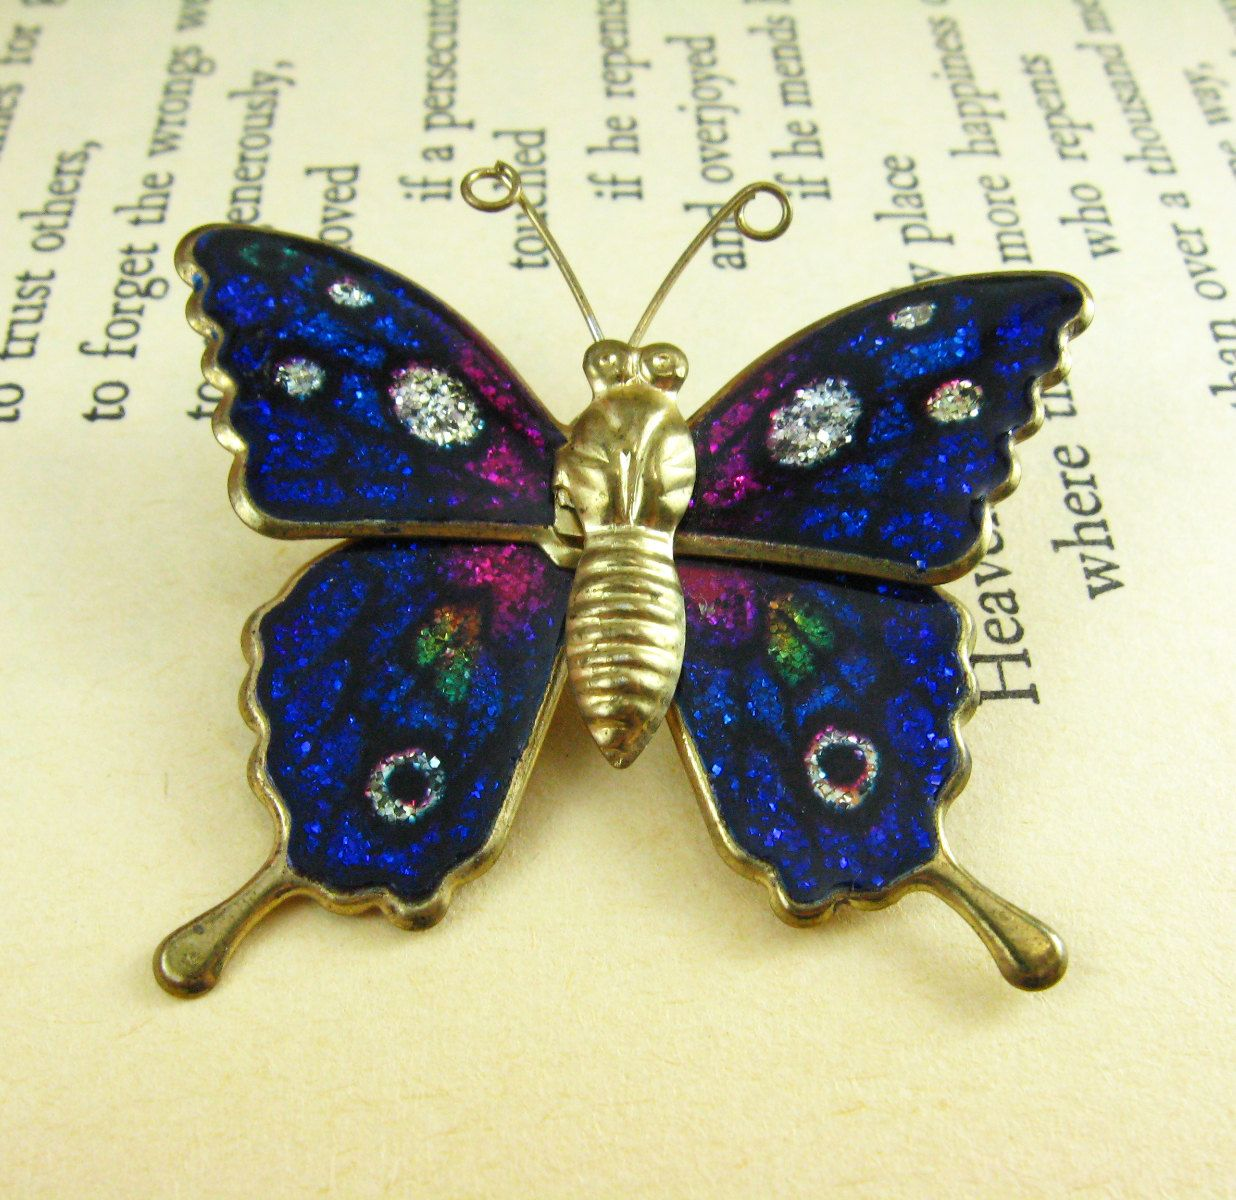 Blue Butterfly Brooch Pin, Vintage Bl… | Vintage Jewelry and Vintage ...